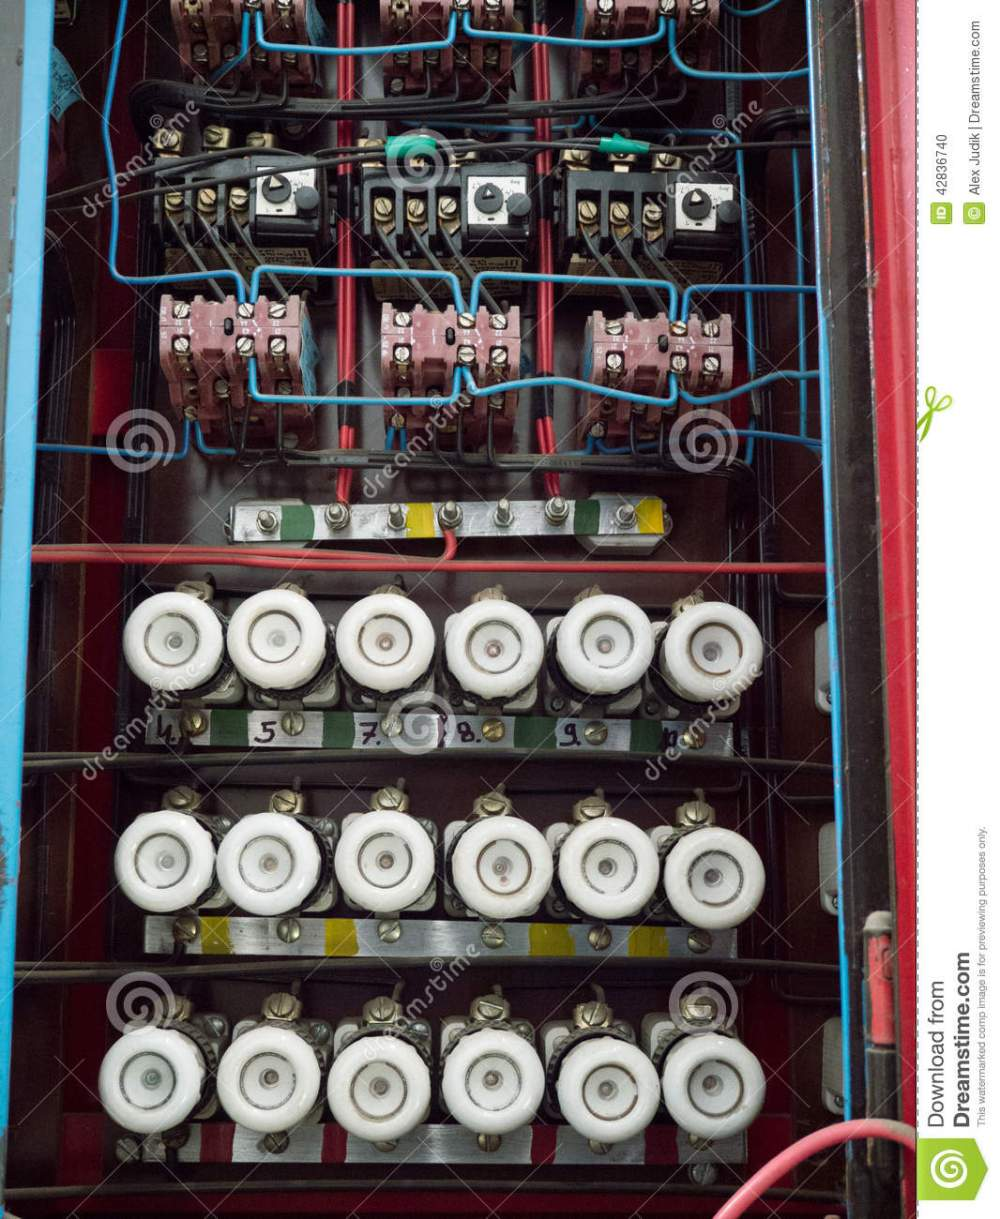 medium resolution of old fuse box on the wall stock photo image of electrics apartment has an old fuse box apartment has an old fuse box